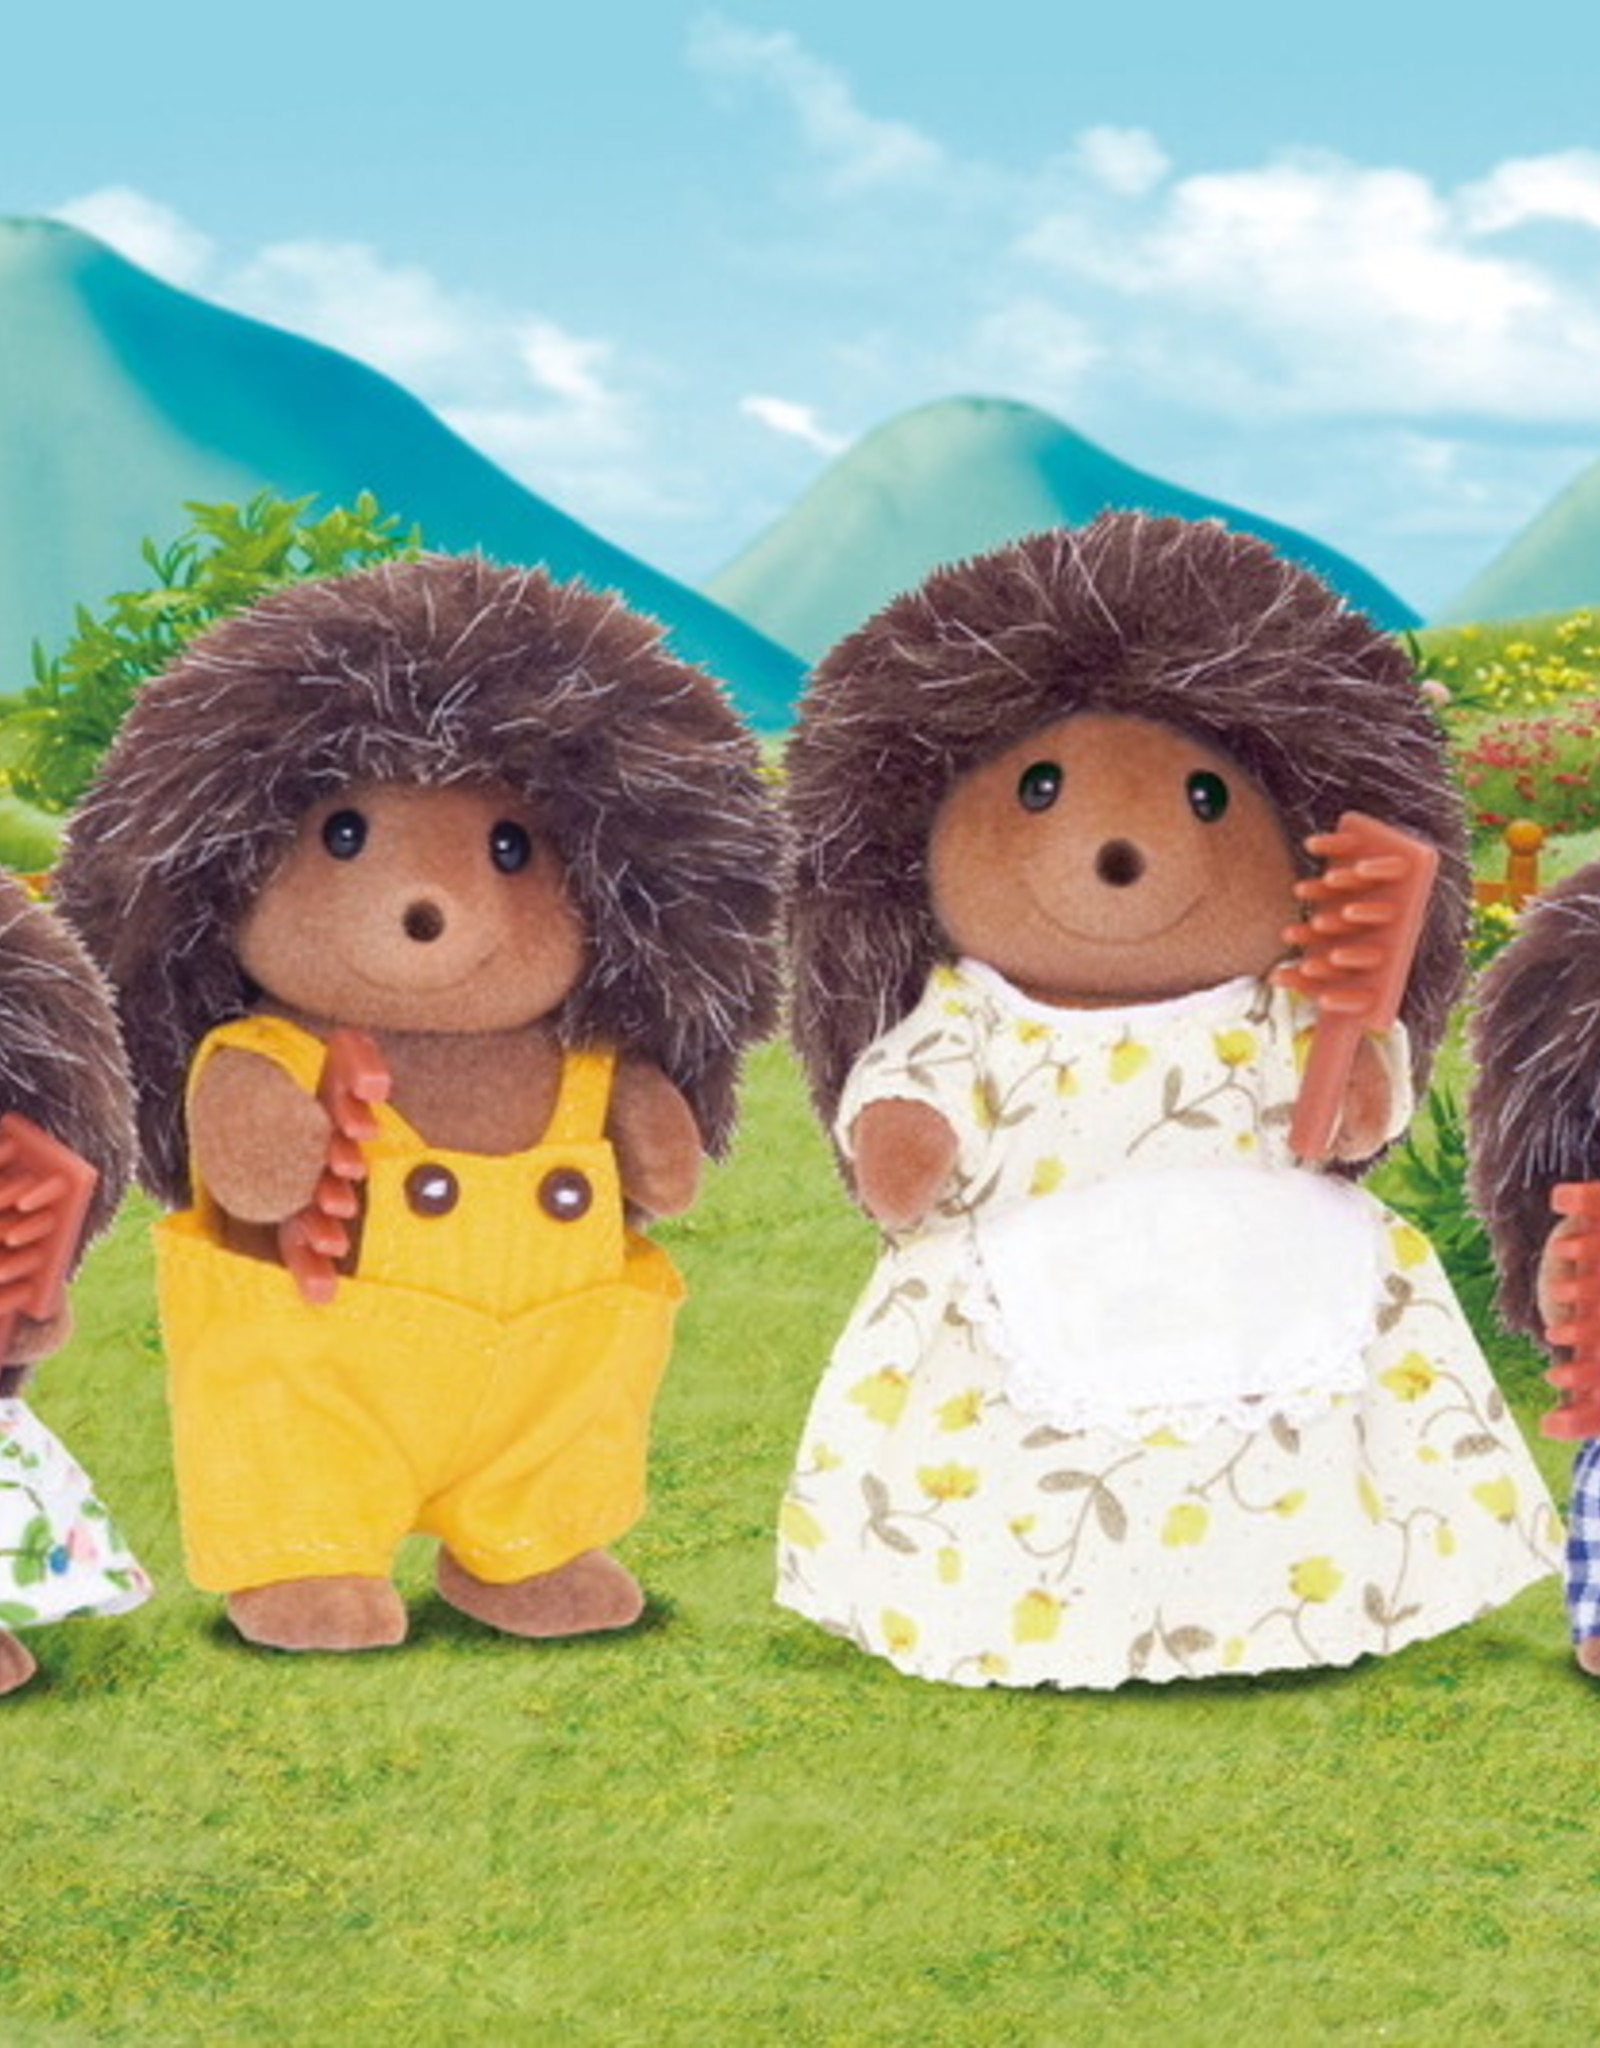 Calico Critters CC Pickleweeds Hedgehog Family